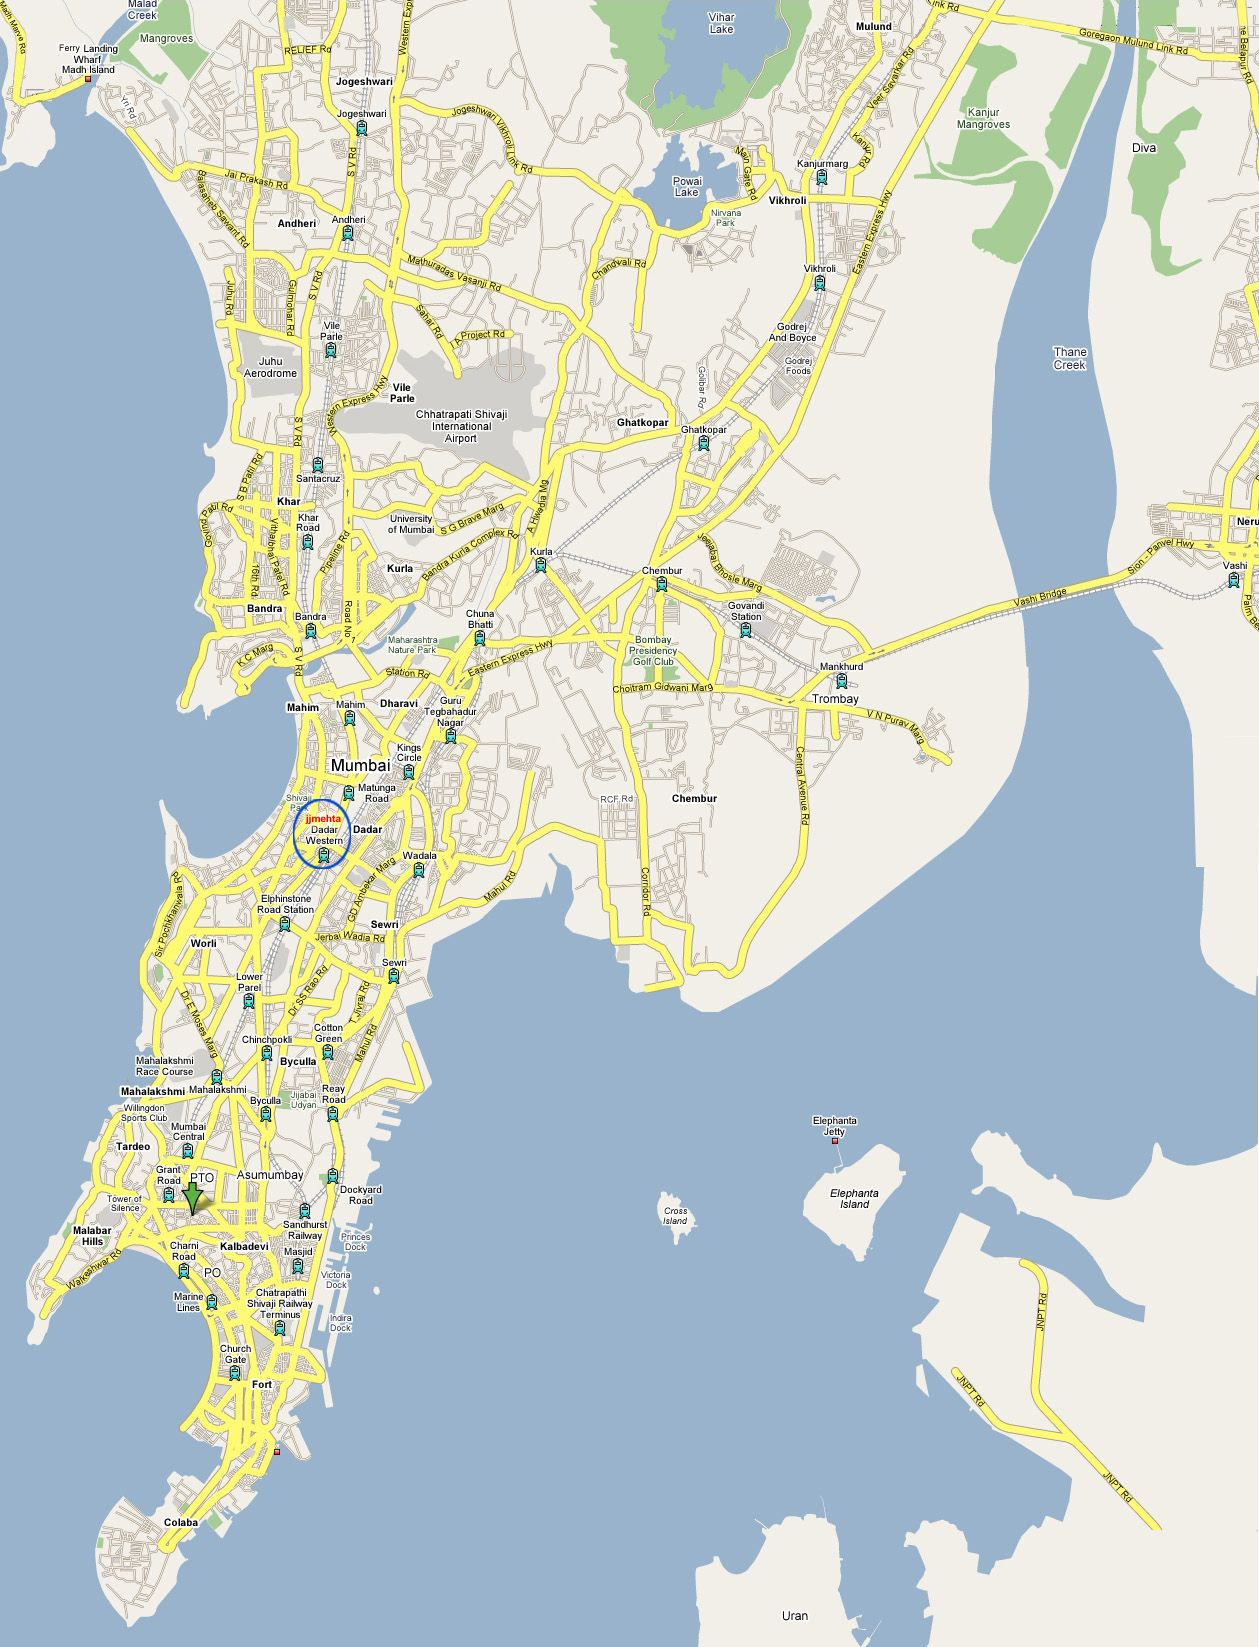 Map of parks, lakes, mangroves and museums of Bombay (Mambai).